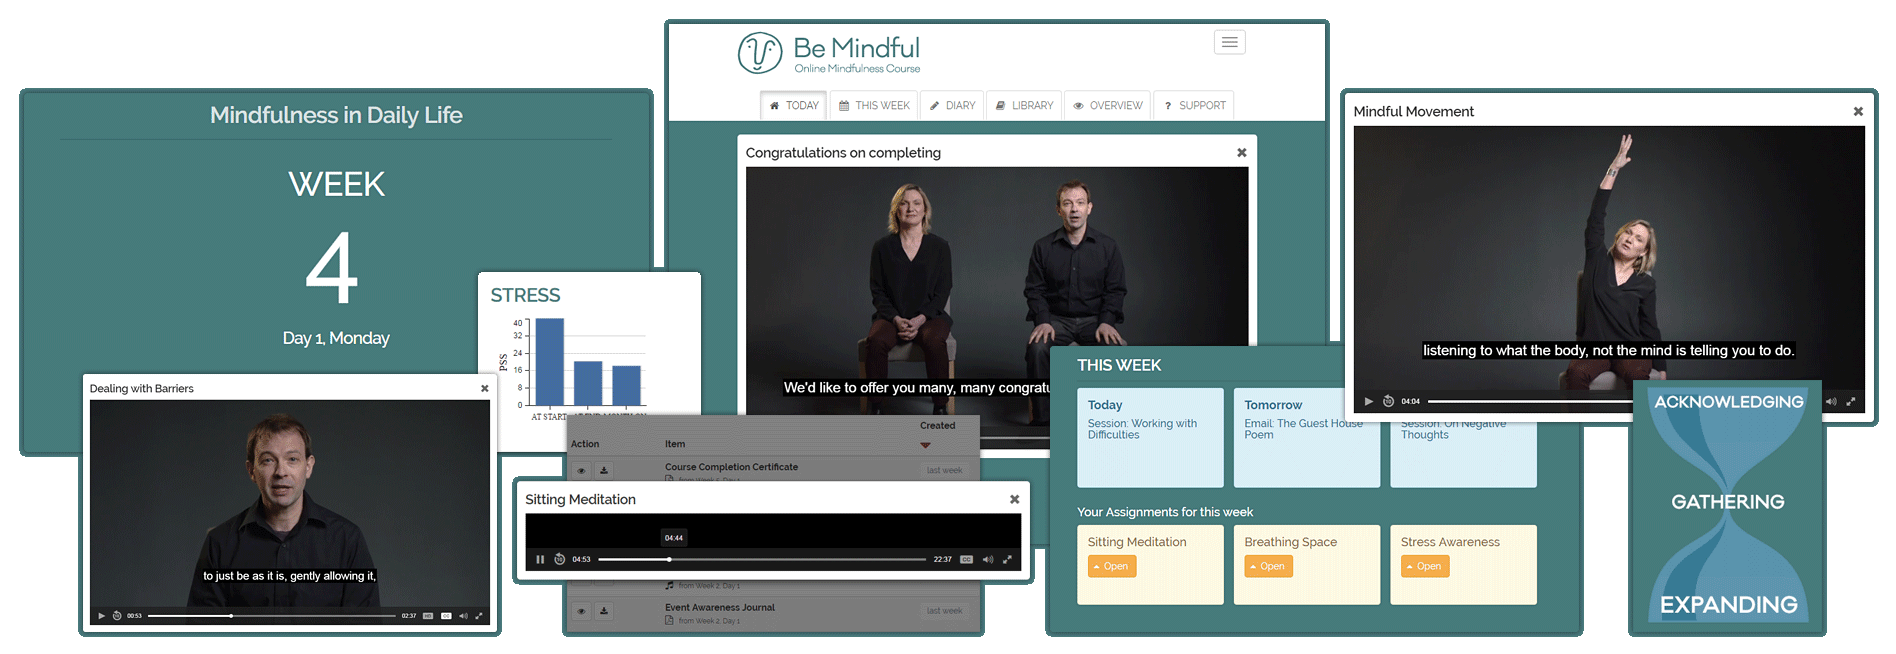 Find out more about the Be Mindful online mindfulness course